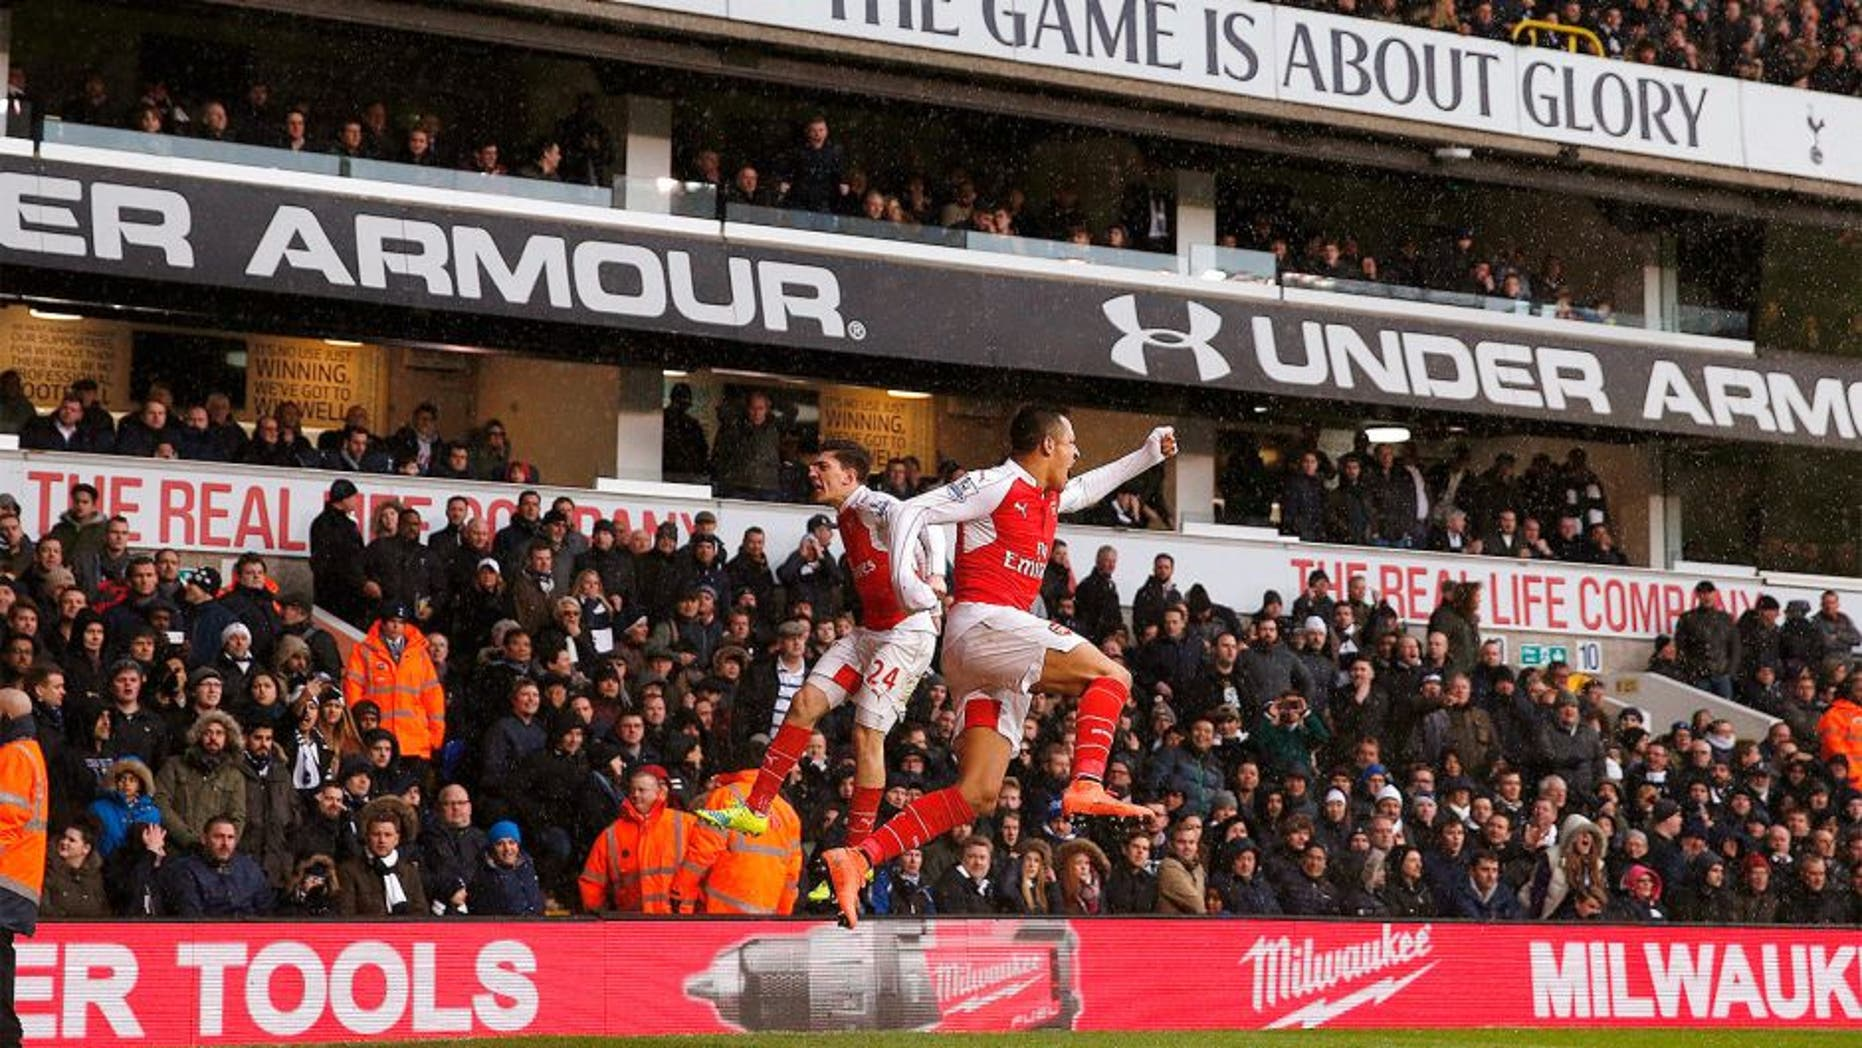 Arsenal's Chilean striker Alexis Sanchez (R) celebrates with Arsenal's Spanish defender Hector Bellerin (L) after scoring their second goal during the English Premier League football match between Tottenham Hotspur and Arsenal at White Hart Lane in London, on March 5, 2016. / AFP / ADRIAN DENNIS / RESTRICTED TO EDITORIAL USE. No use with unauthorized audio, video, data, fixture lists, club/league logos or 'live' services. Online in-match use limited to 75 images, no video emulation. No use in betting, games or single club/league/player publications. / (Photo credit should read ADRIAN DENNIS/AFP/Getty Images)